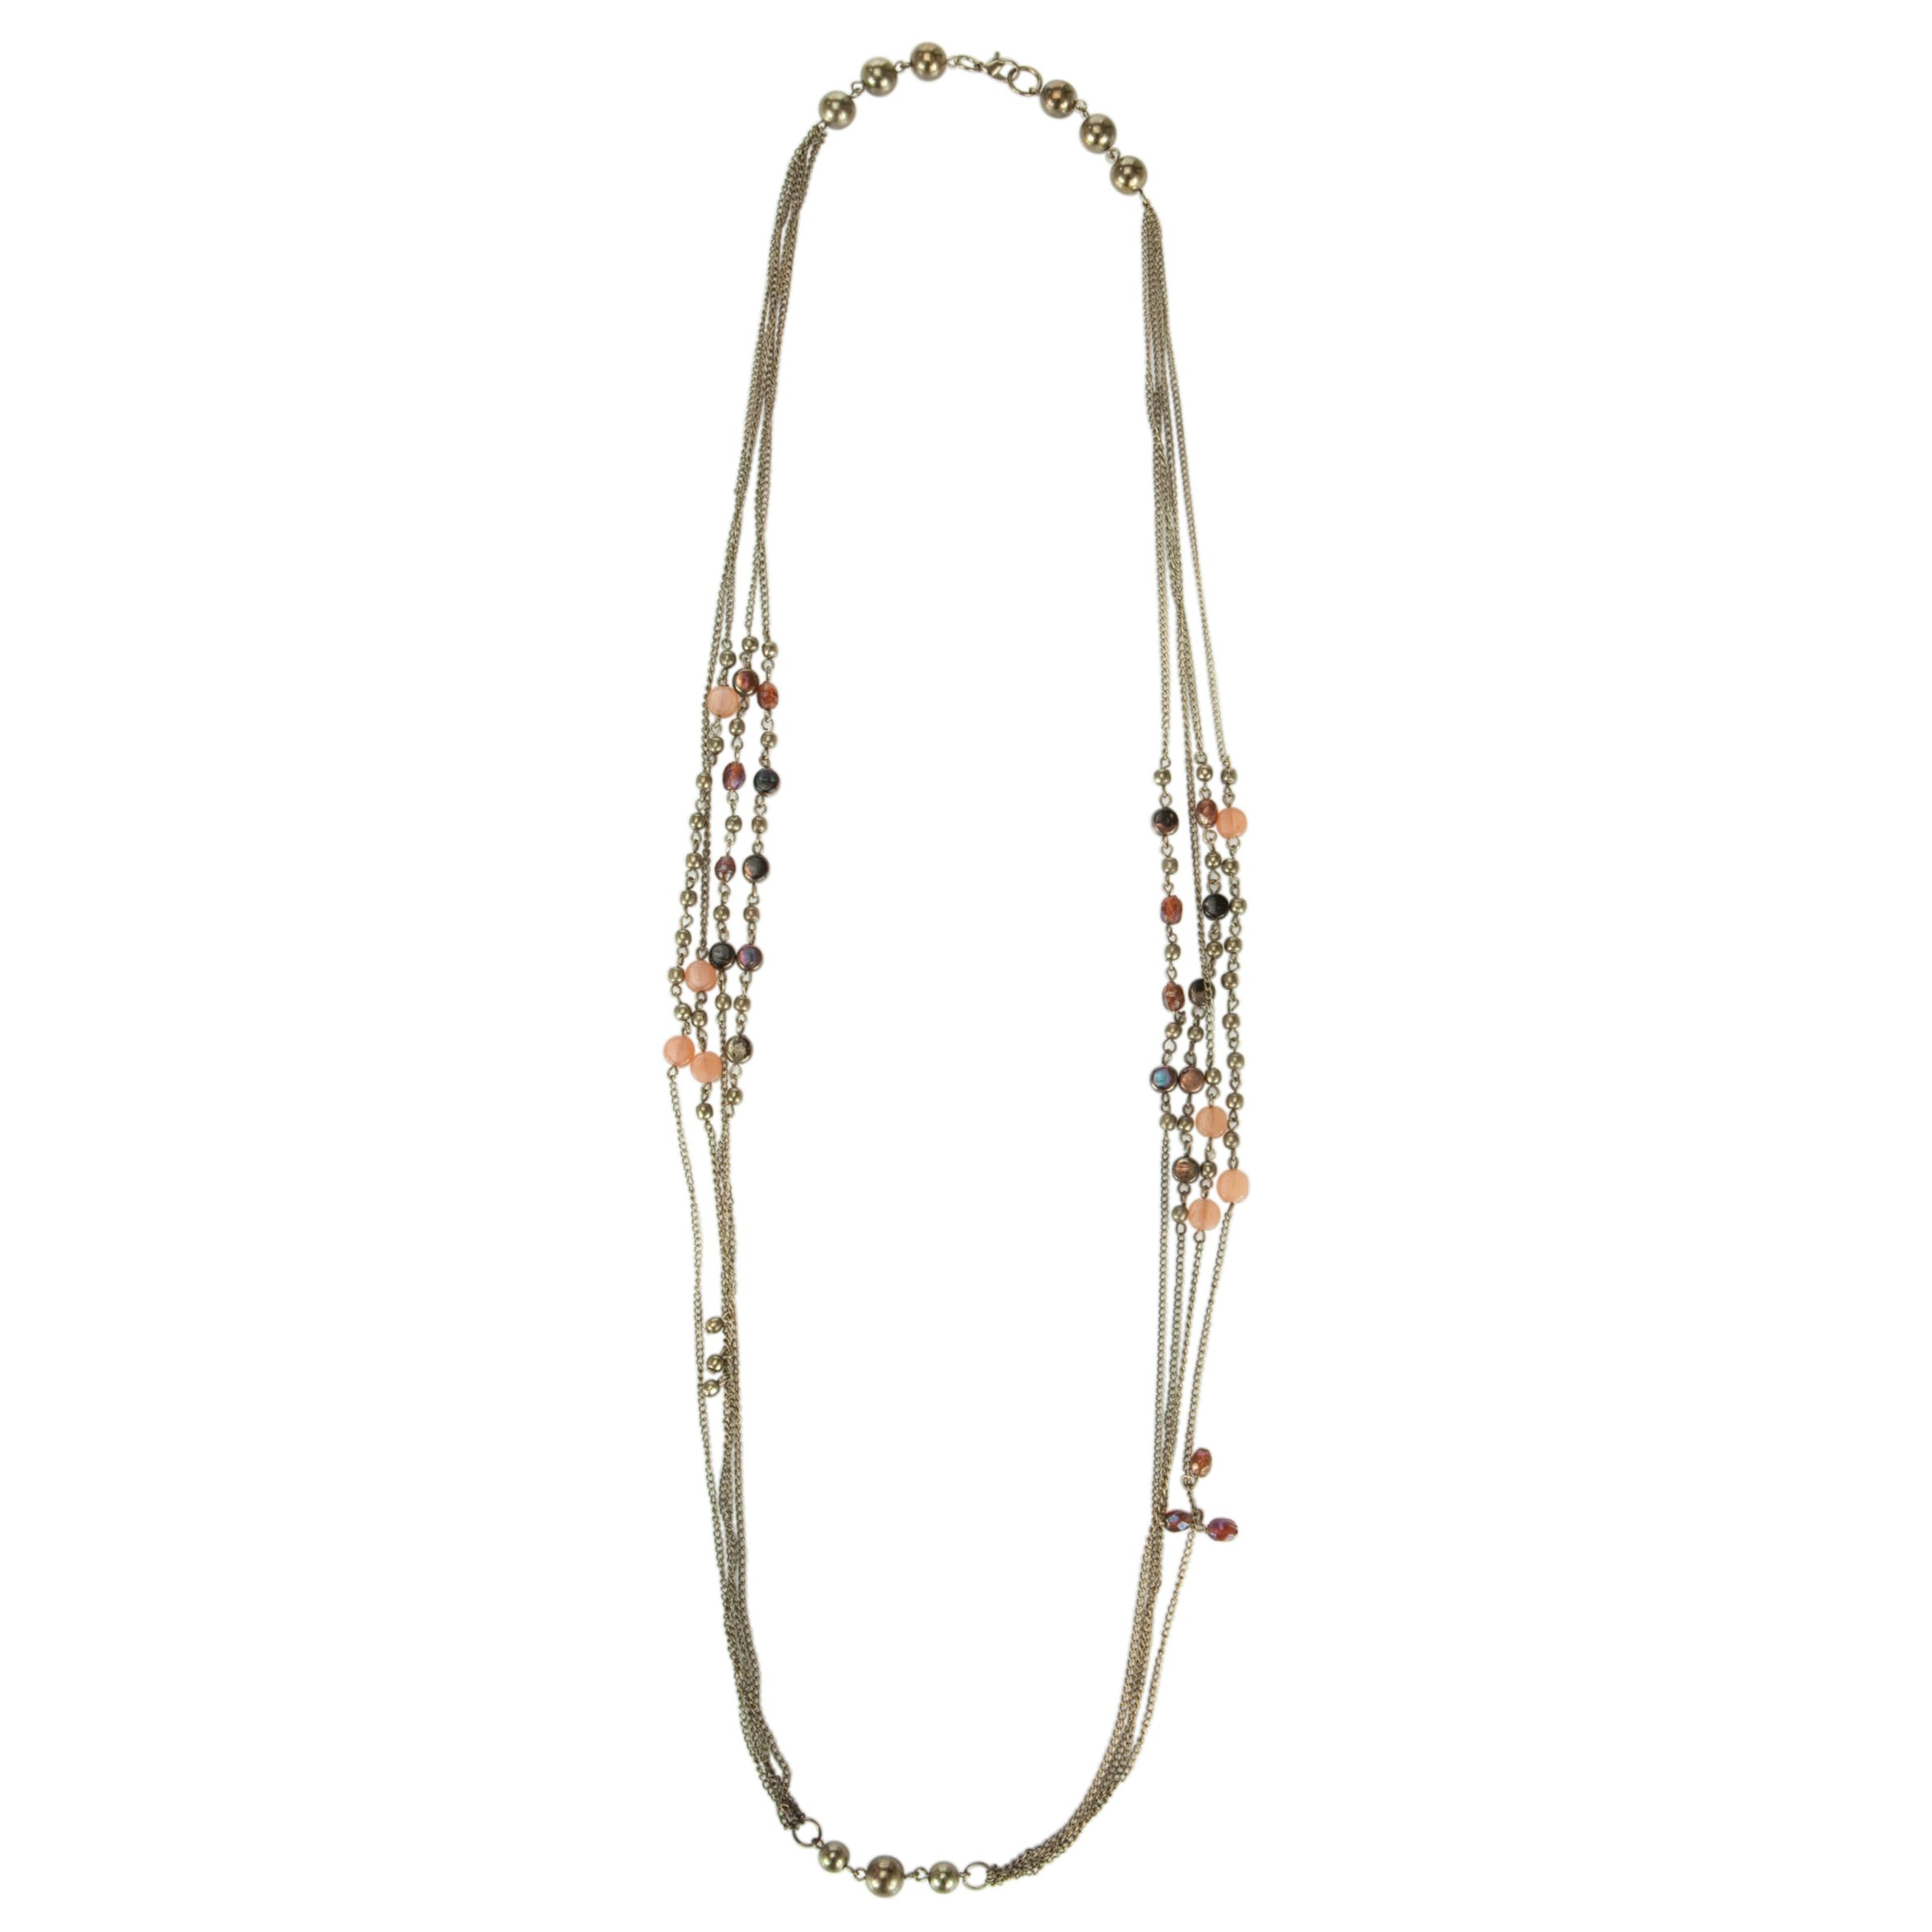 John Lewis Women 4 String Mix Bead Cluster Long Necklace, Multi